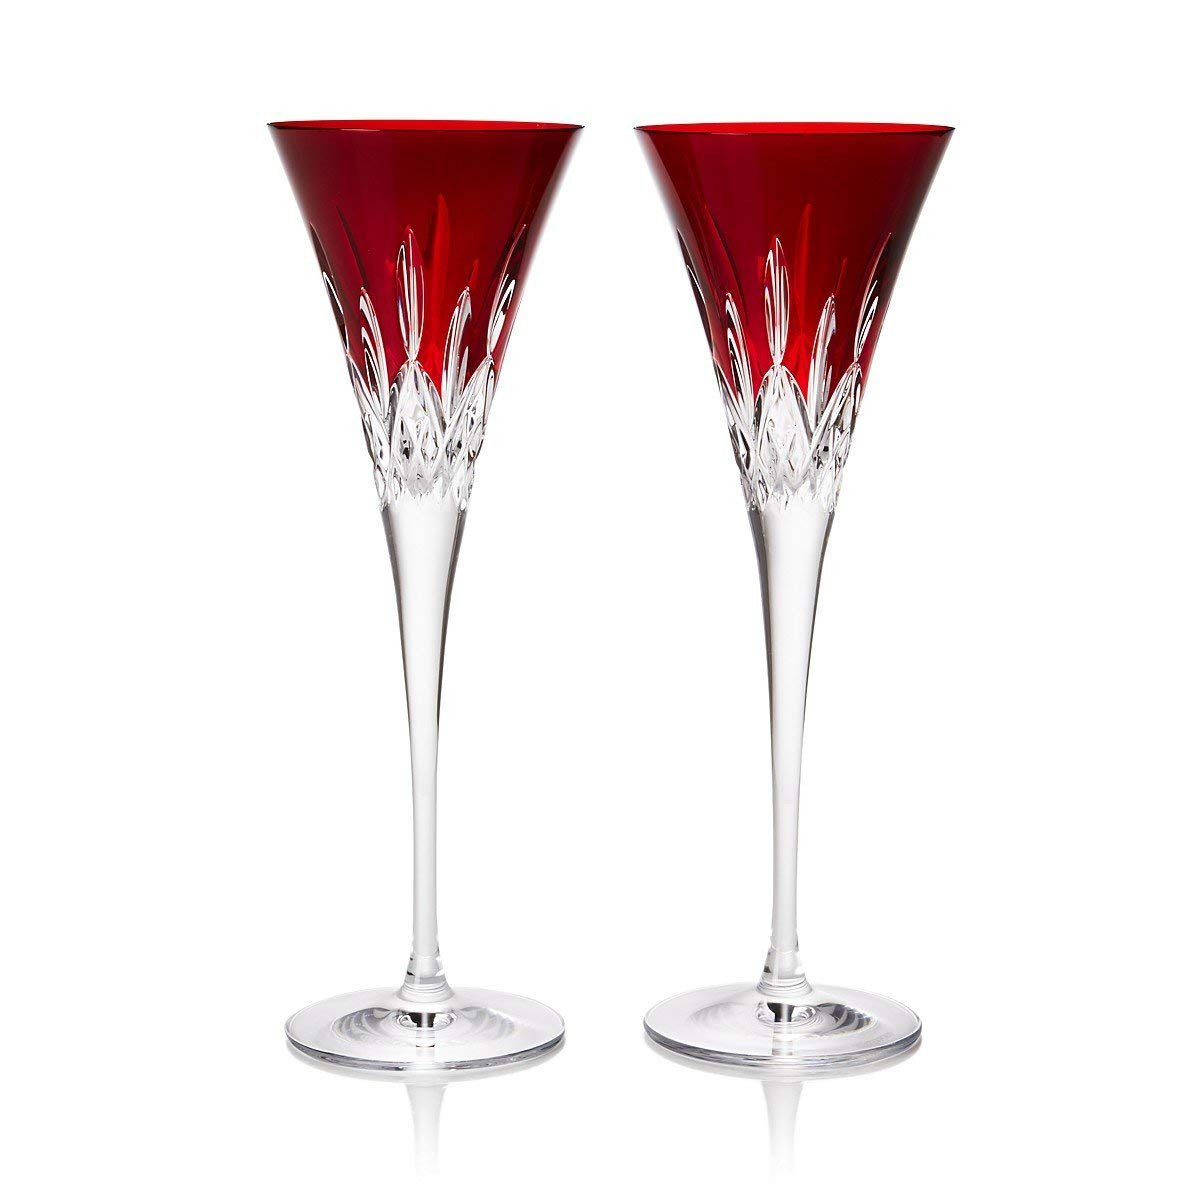 waterford lismore sapphire vase of amazon com waterford crystal lismore pops red flute pair in amazon com waterford crystal lismore pops red flute pair champagne glasses